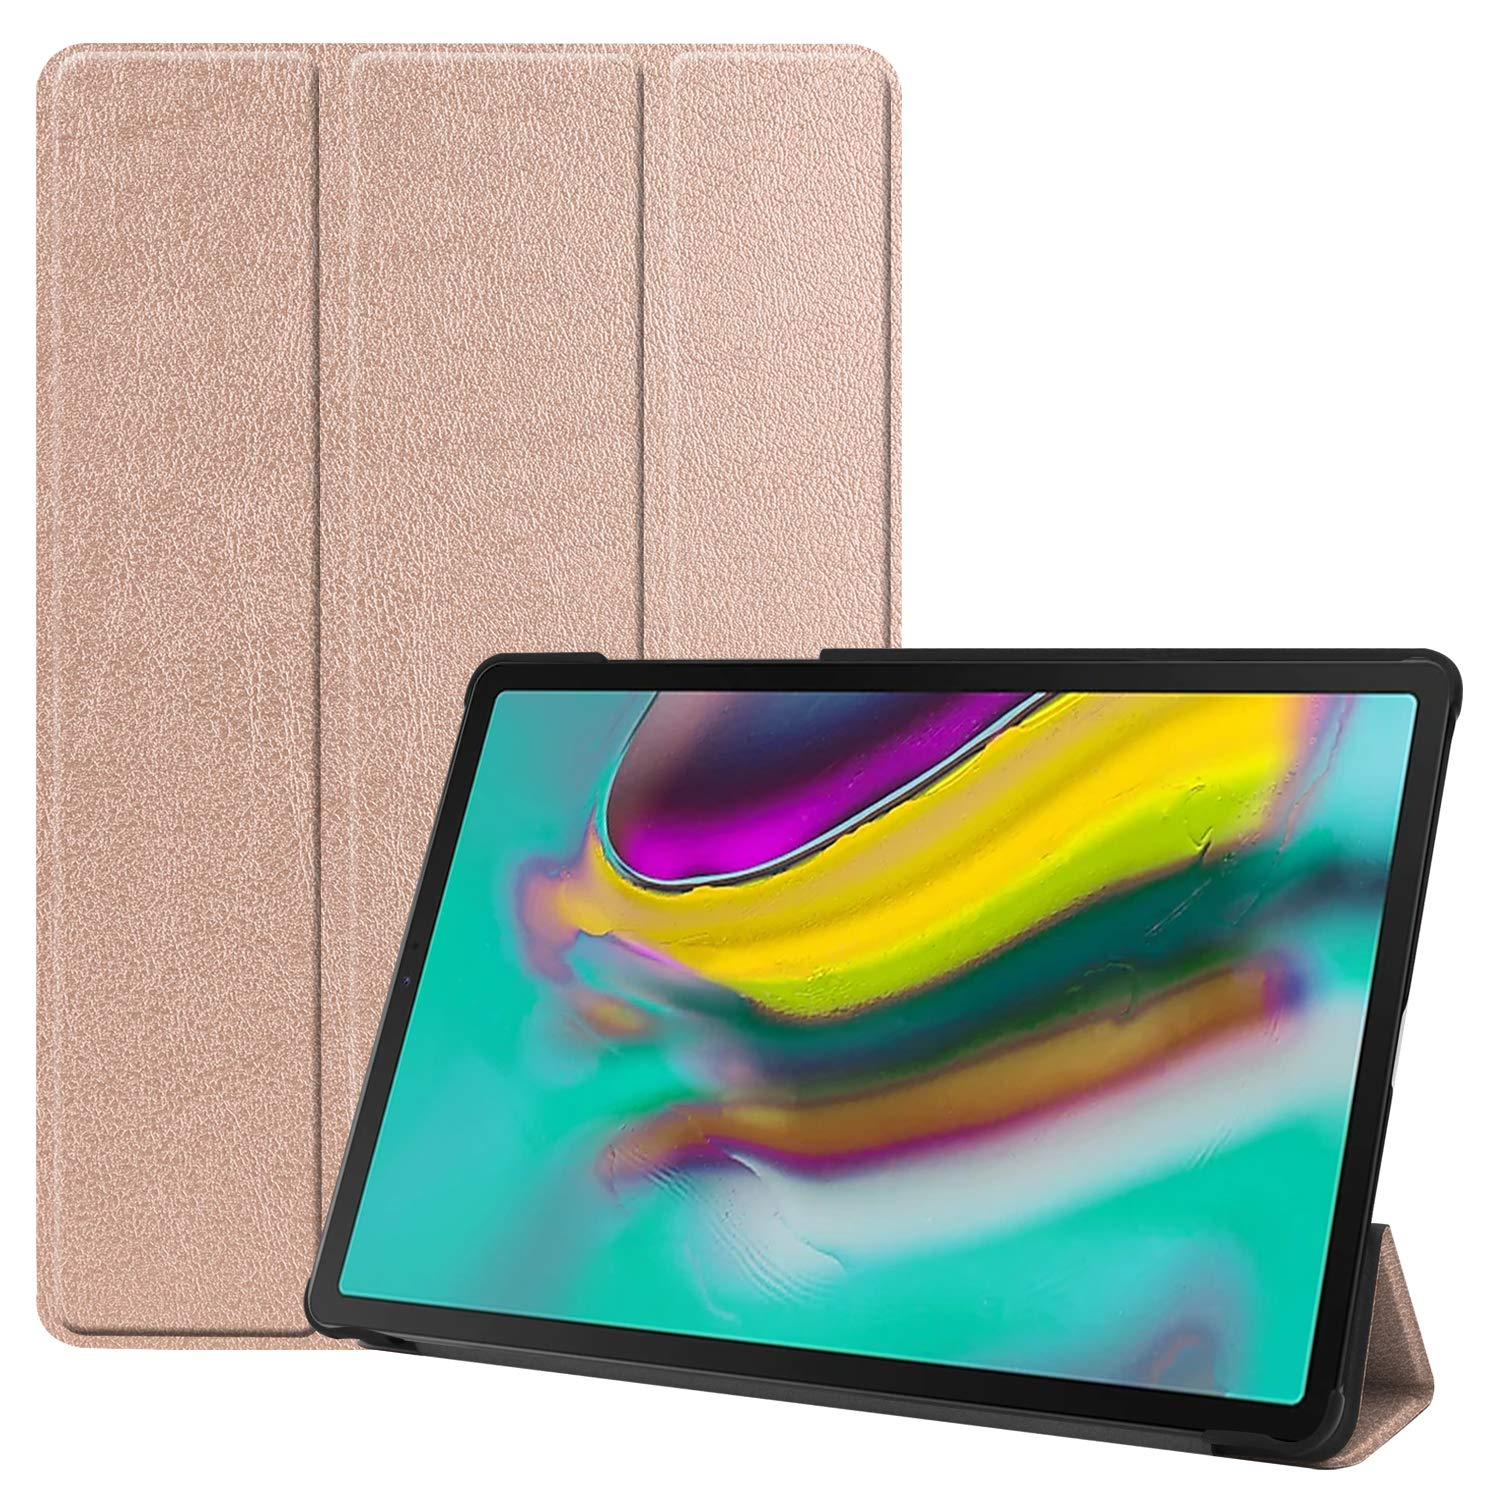 Fmway Case for Samsung Tab S5e Smart Leather Cover with Stand Function Auto Wake//Sleep for Samsung Galaxy Tab S5e T720 T725